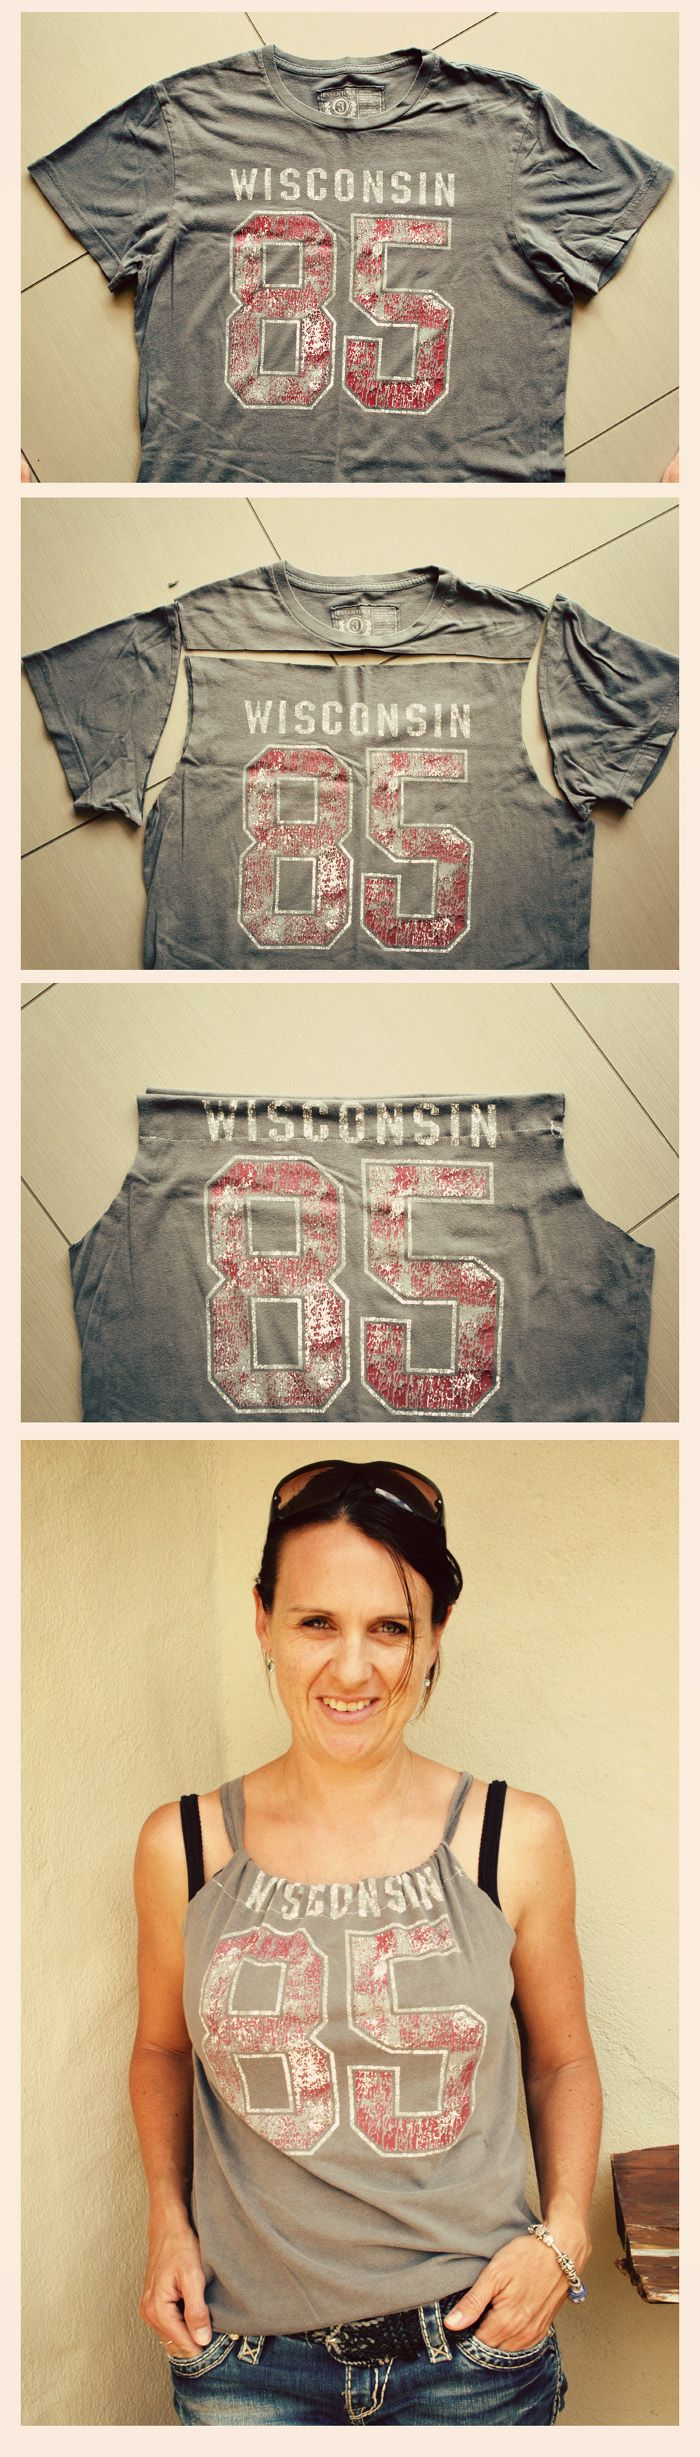 Tshirt re-styling - I am SO doing this with my old concert tees